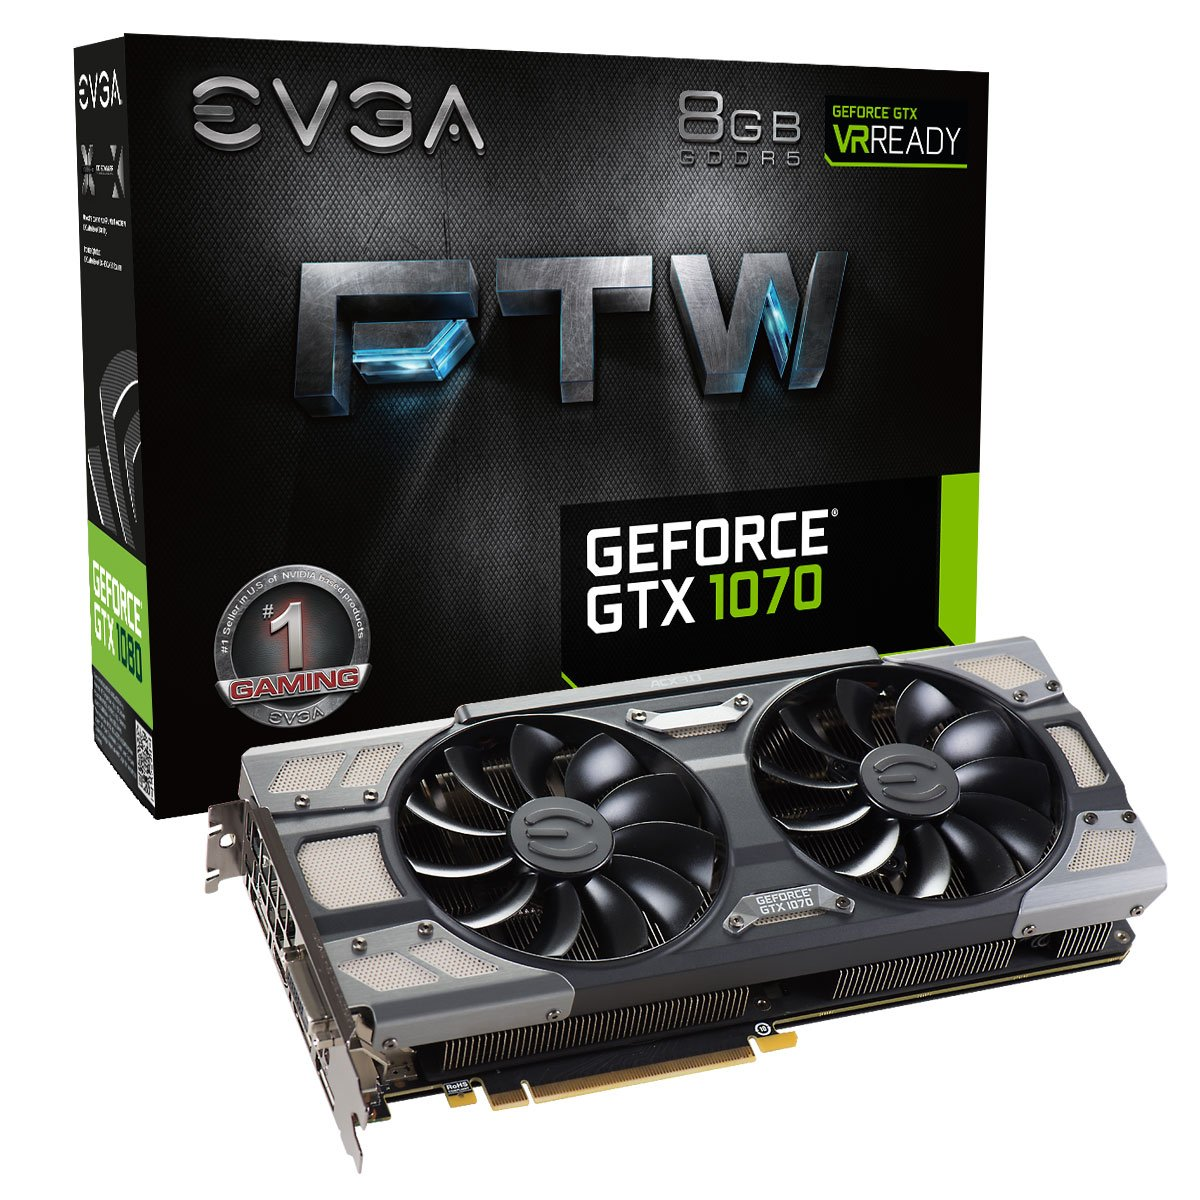 Amazon EVGA GeForce GTX 1070 FTW GAMING ACX 30 8GB GDDR5 RGB LED 10CM FAN 10 Power Phases Double BIOS DX12 OSD Support PXOC Graphics Card